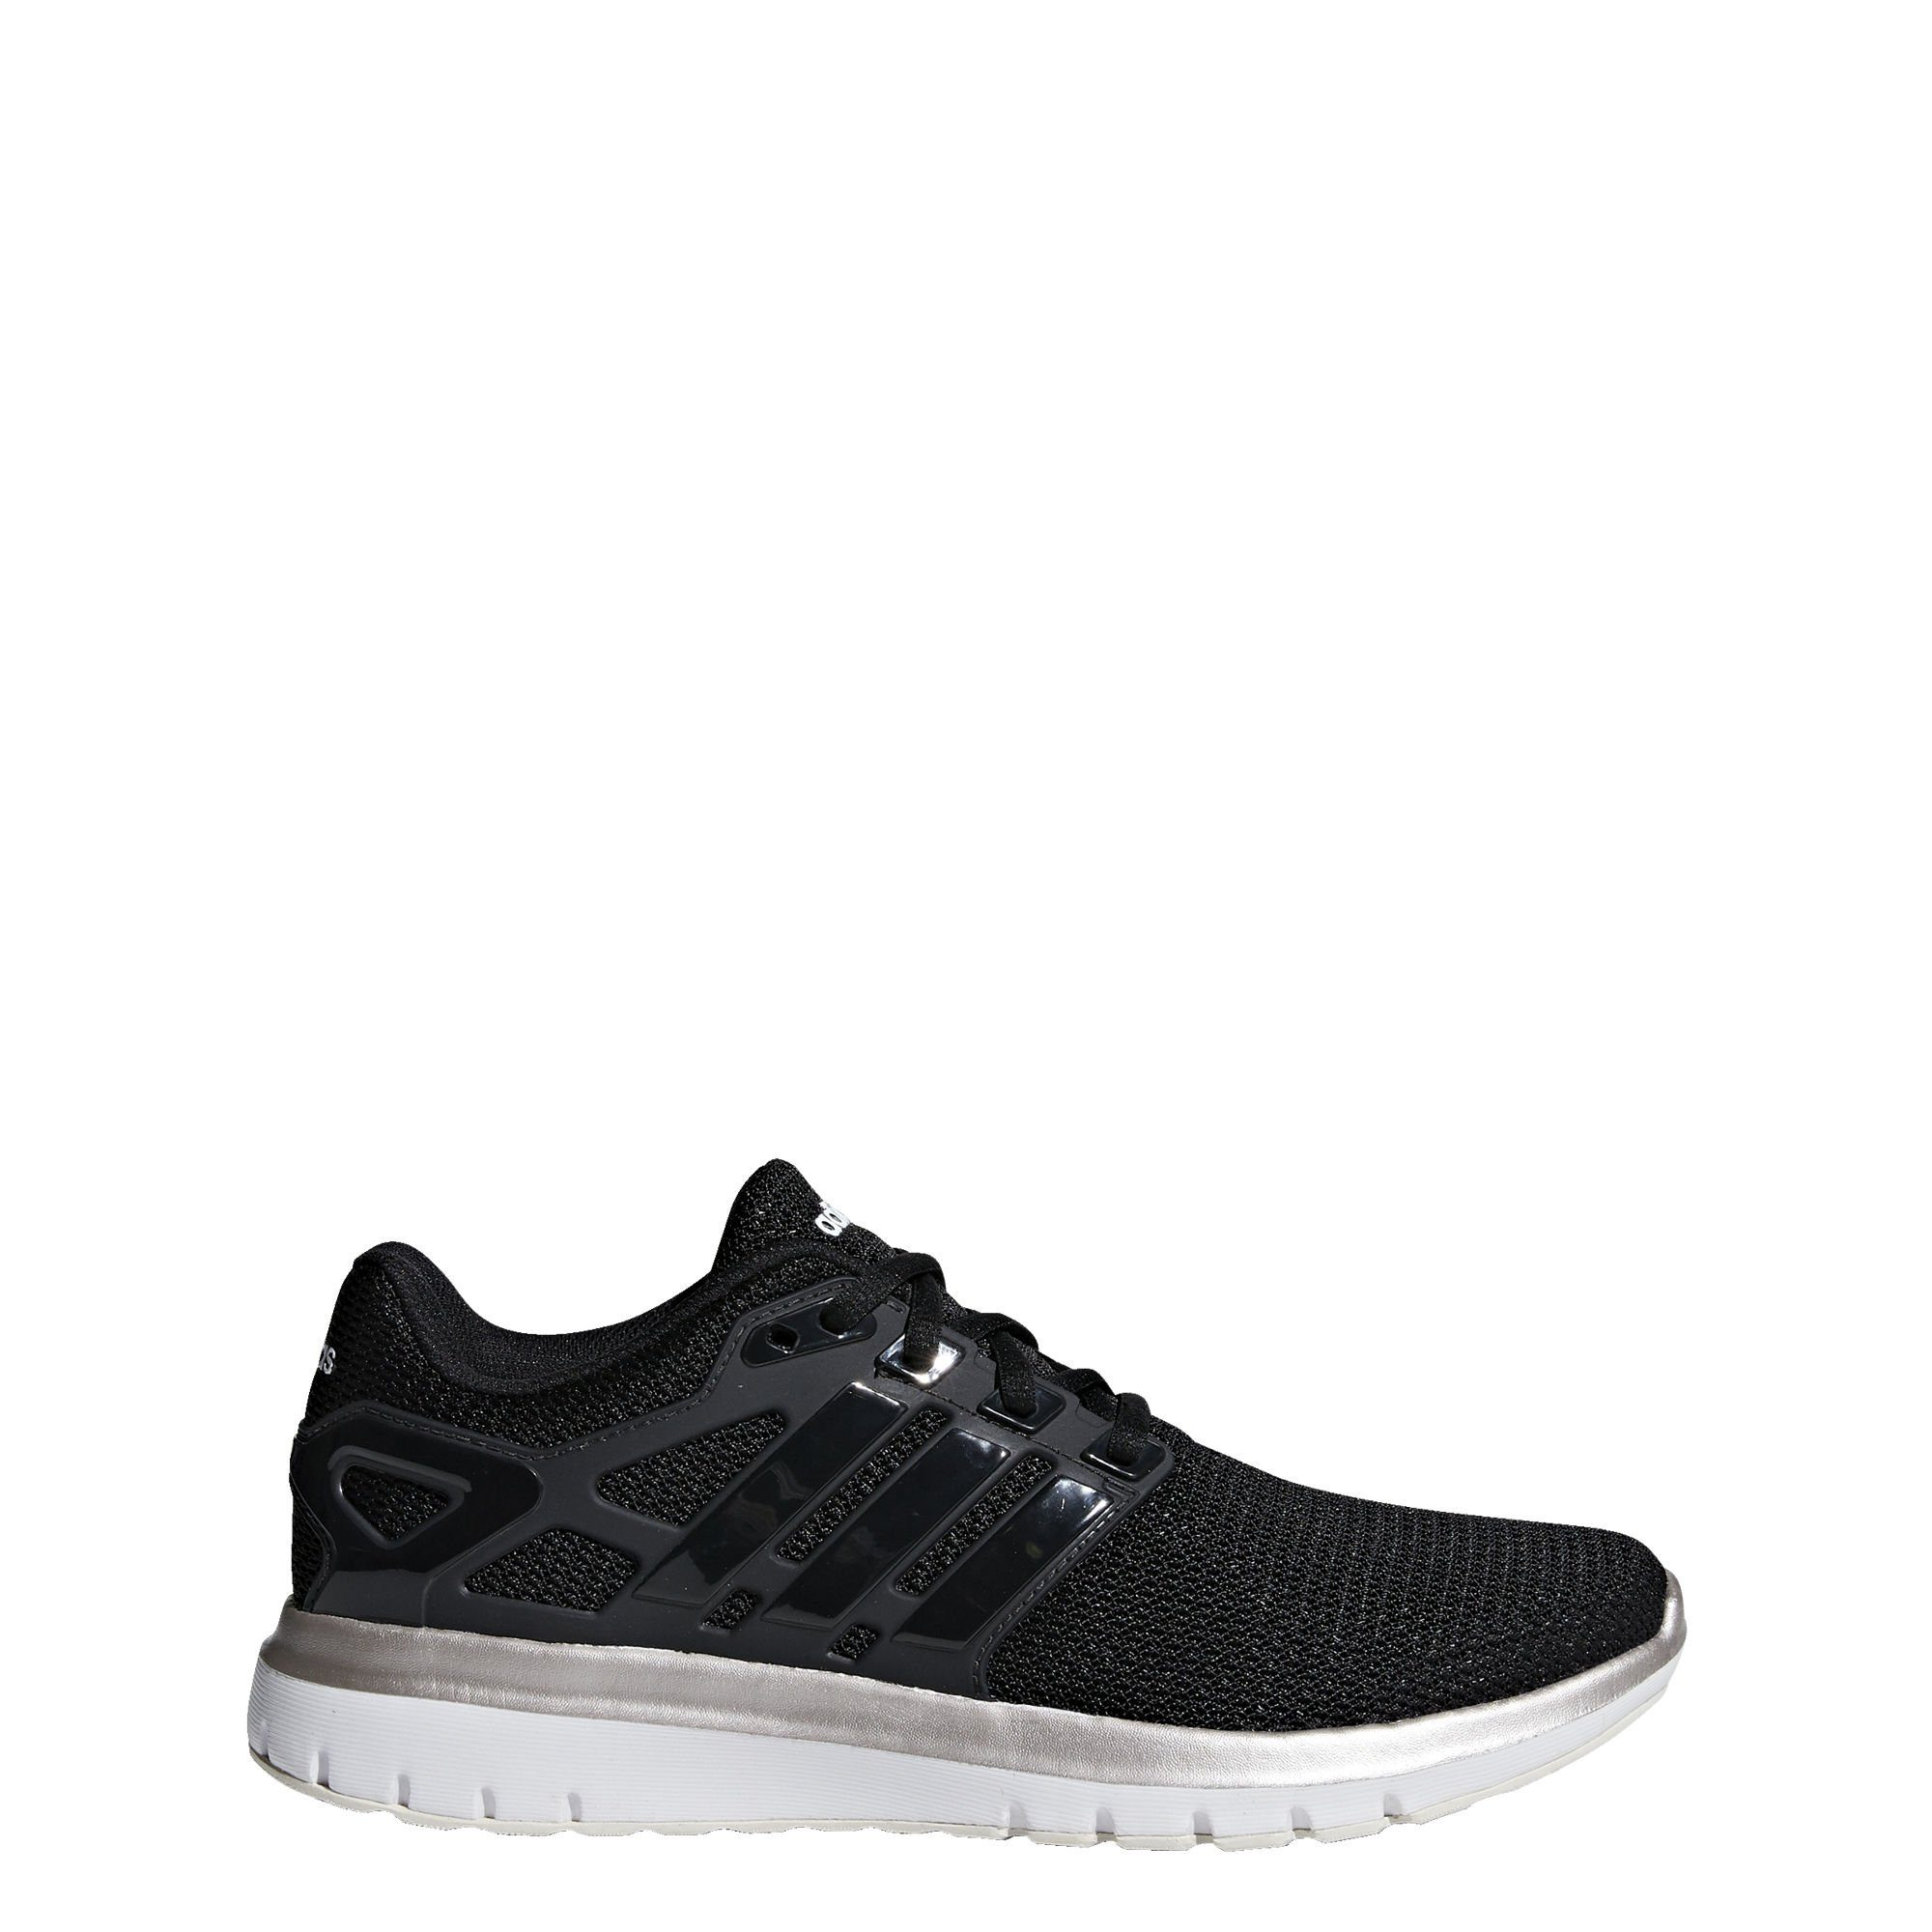 Cloud V Schuh« Adidas KaufenOtto Sneaker Online Performance Cloudfoam;essentials »energy lK1cFTJ